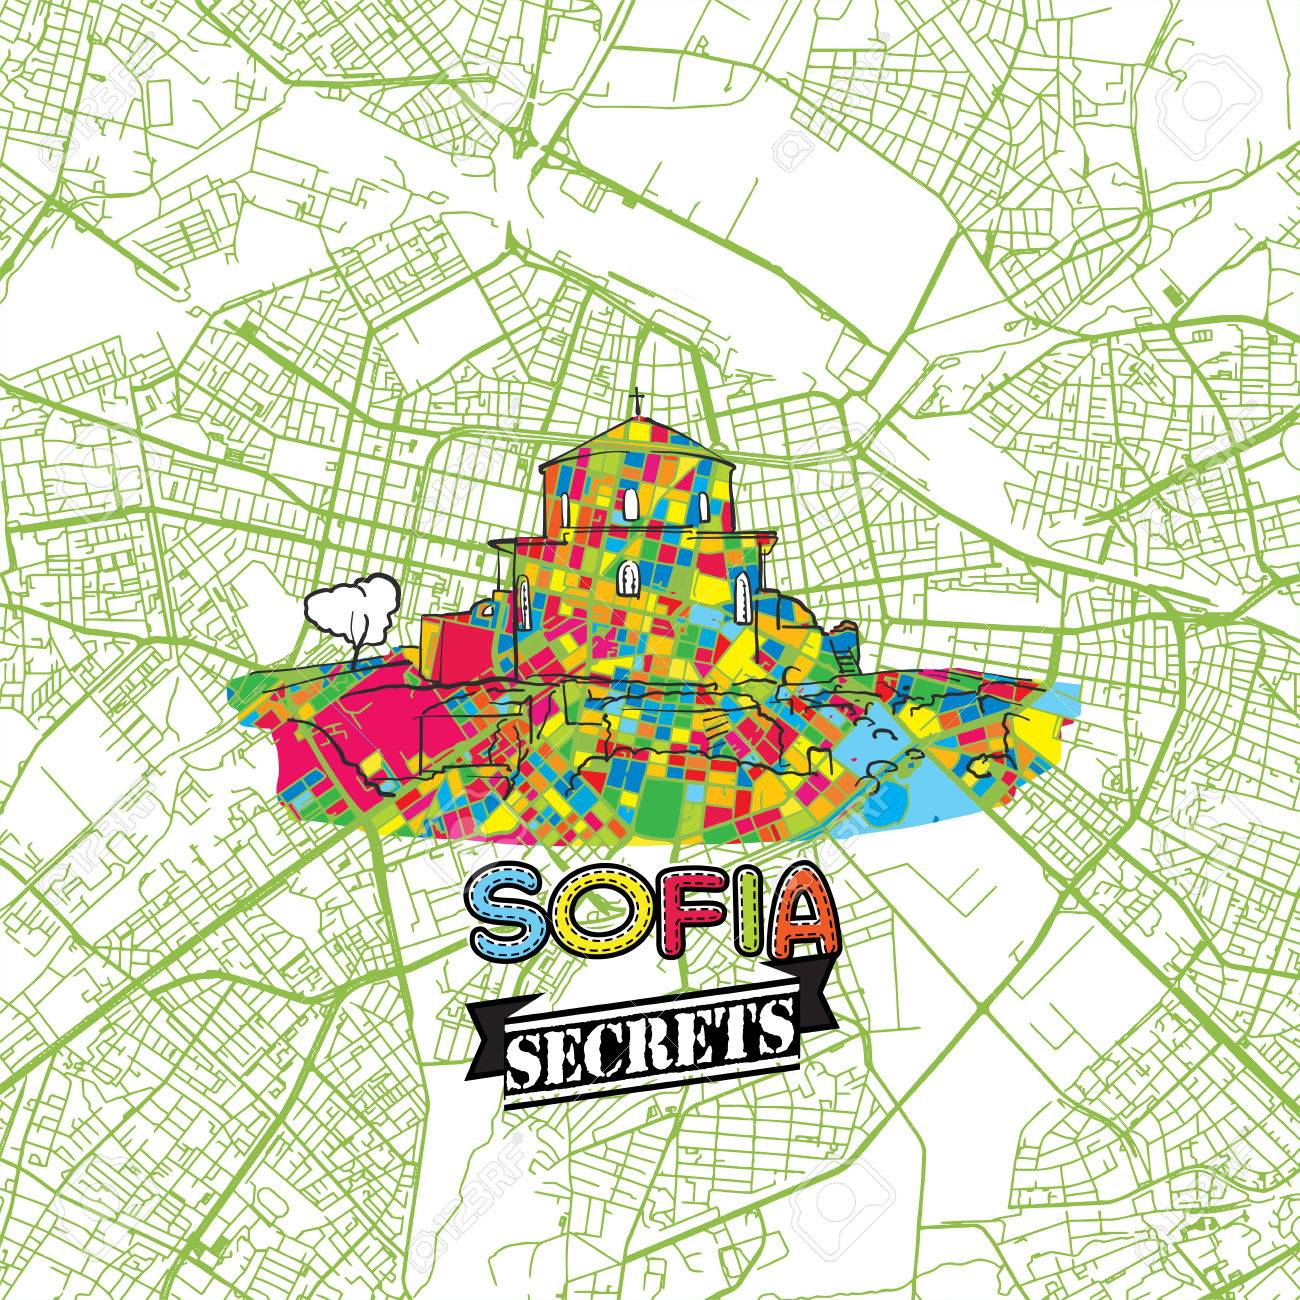 Sofia Travel Secrets Art Map For Mapping Experts And Travel Guides